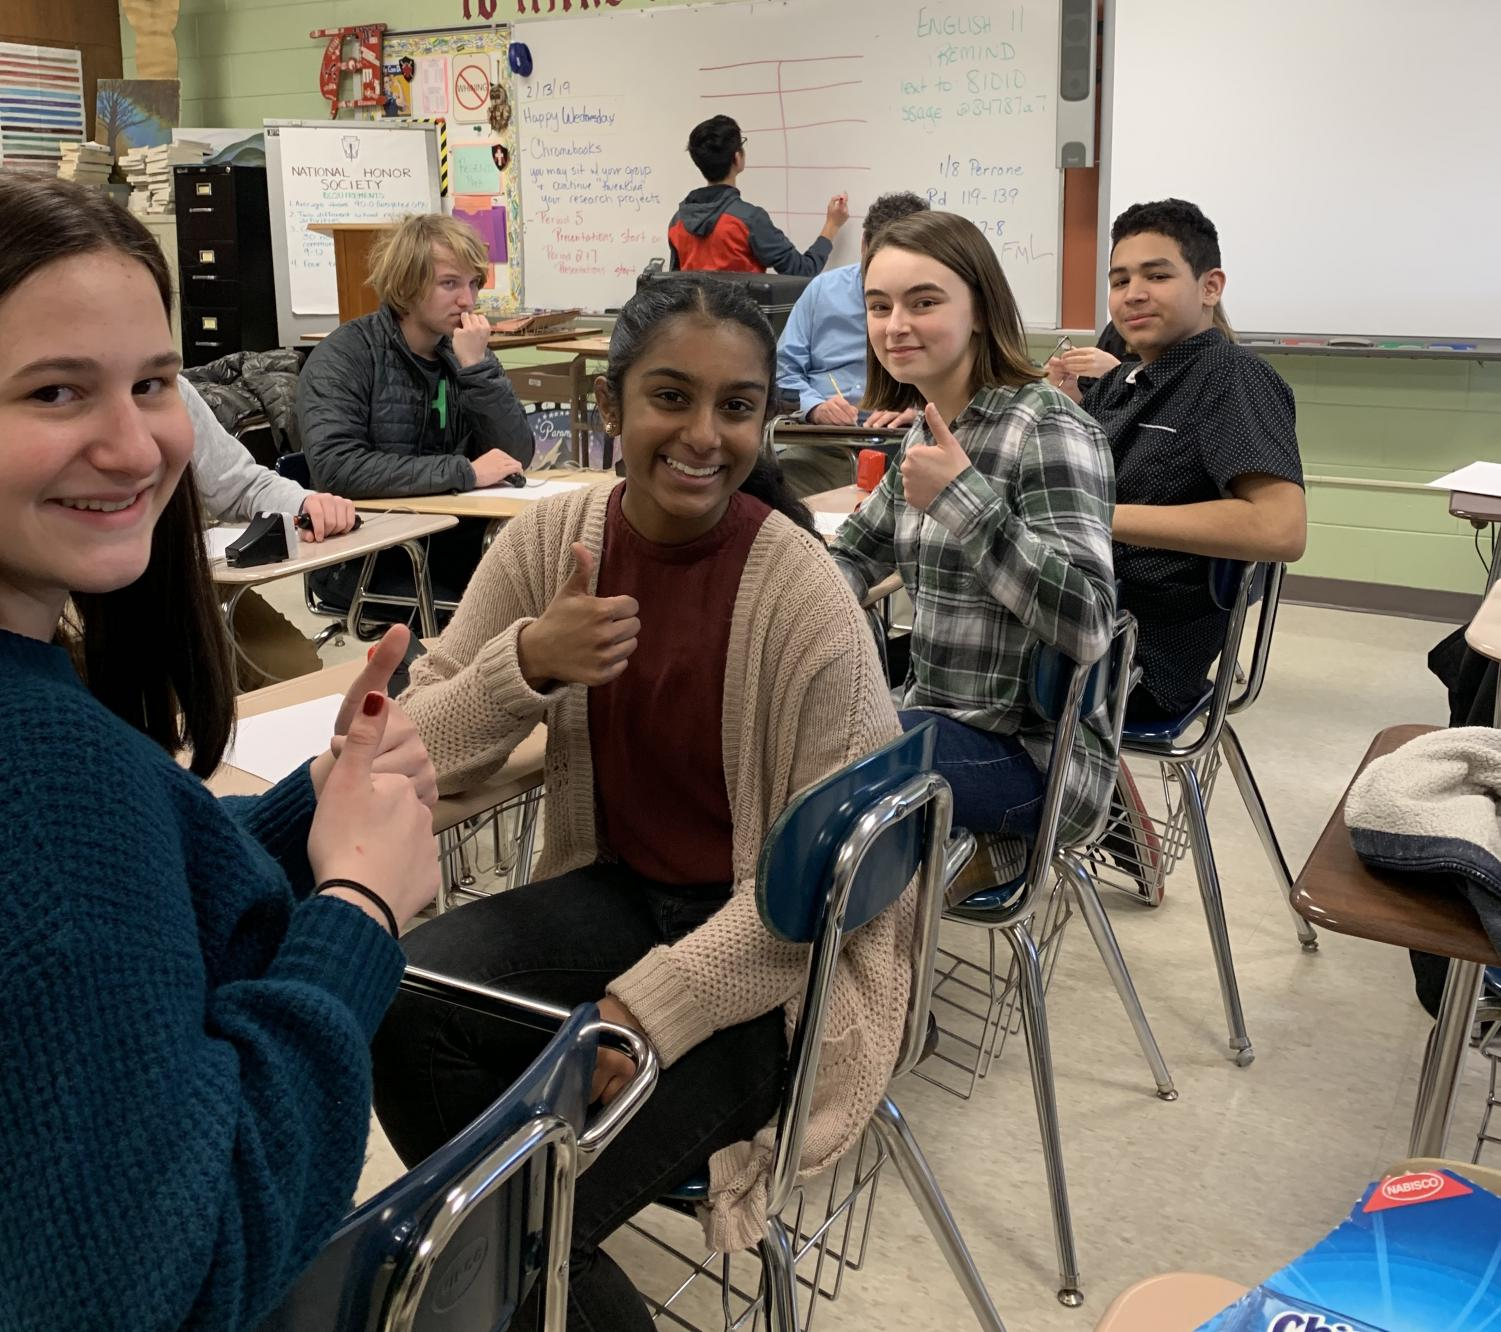 Juniors Sarah Varghese and Meghan O'Leary (2nd and 3rd from left) and Sophomore Jeff Tajada offer a thumbs up to encourage newcomer, Esme Warmuth, gr. 9 for her first competition.